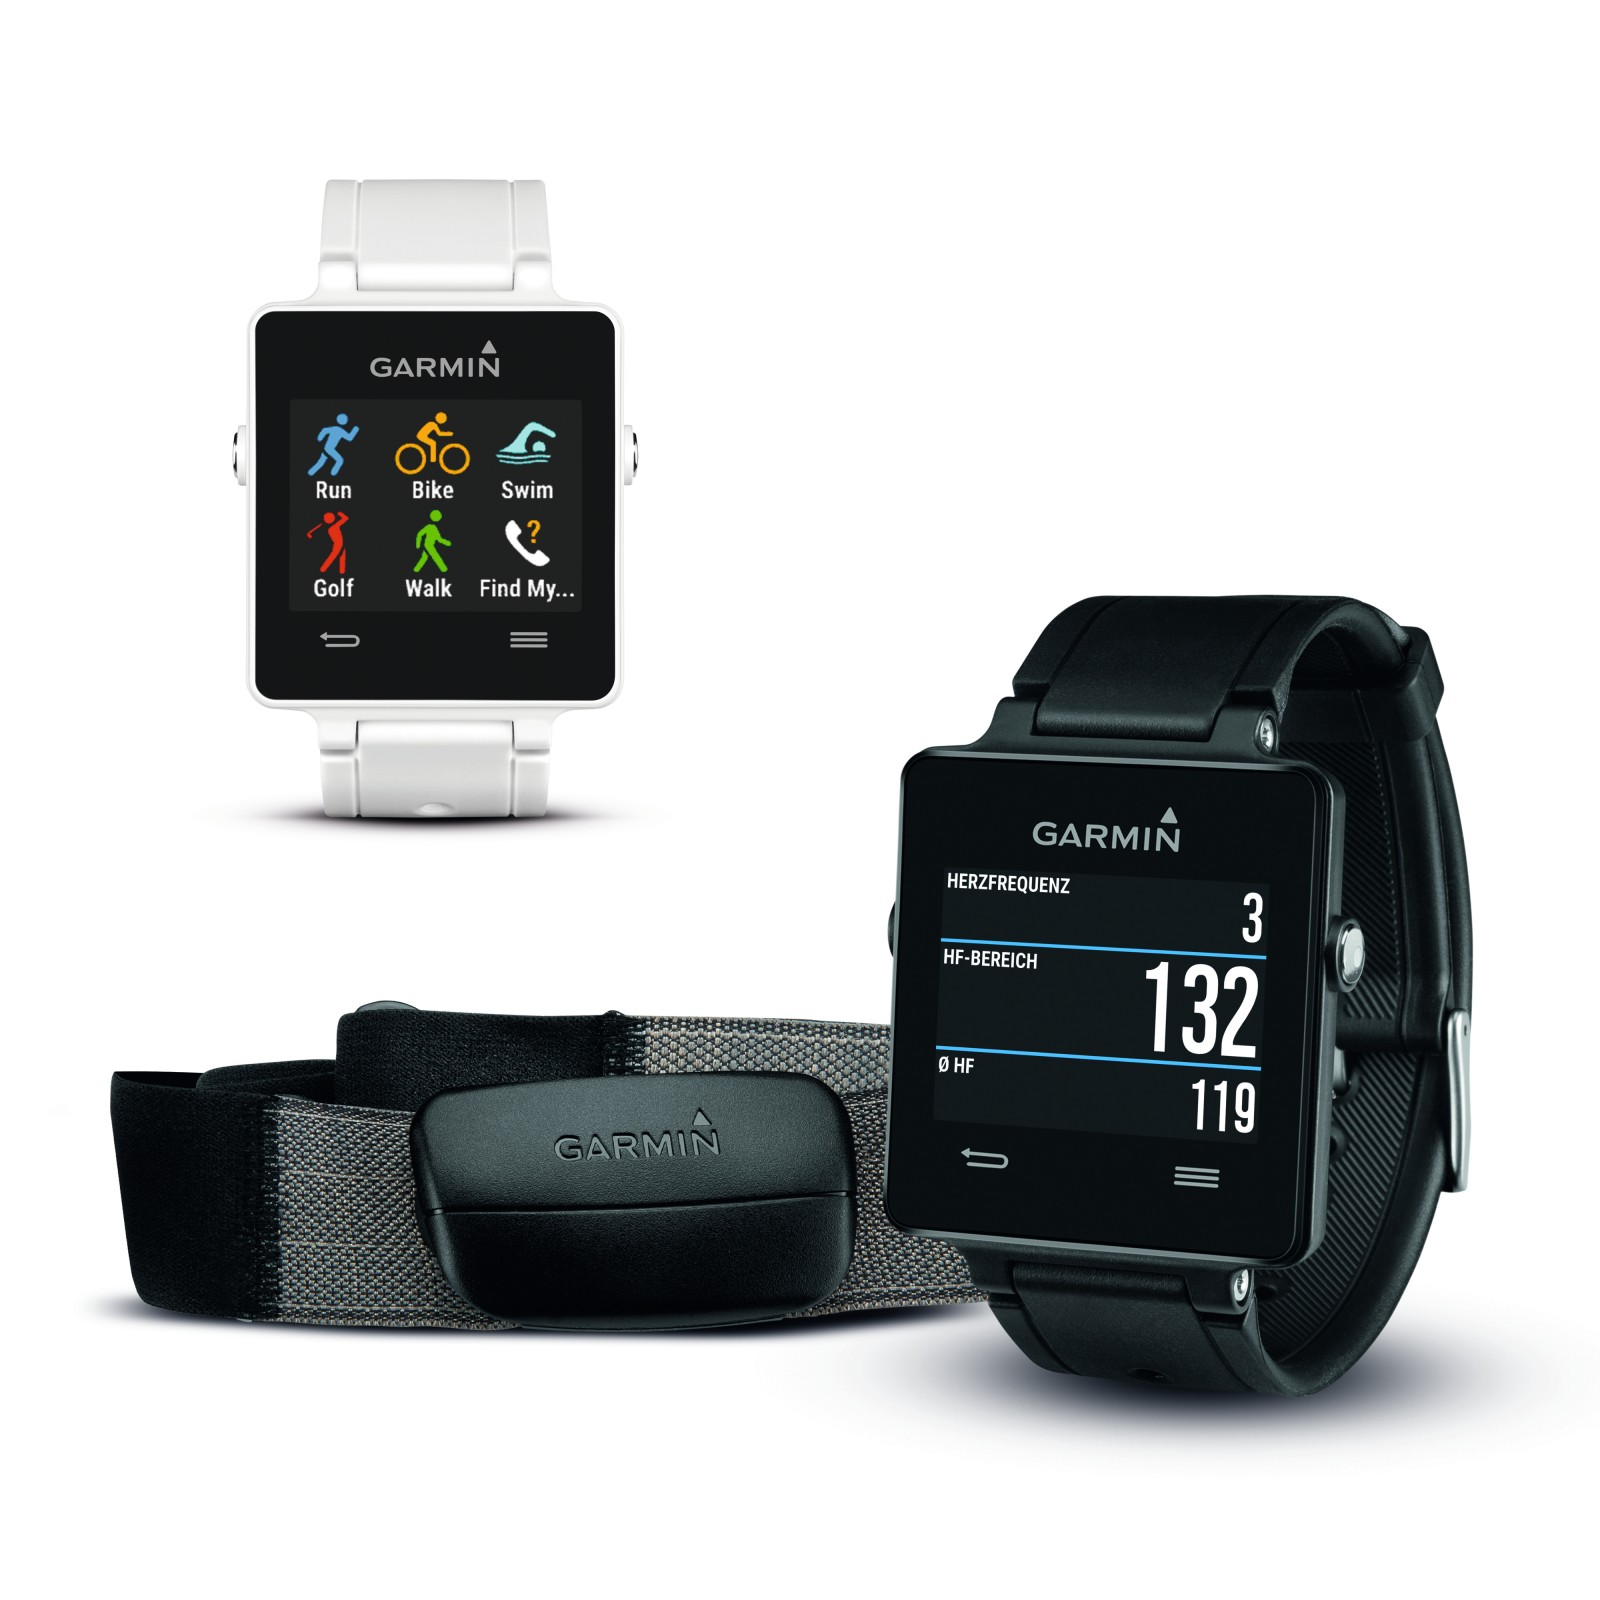 garmin vivoactive gps smartwatch buy test sport tiedje. Black Bedroom Furniture Sets. Home Design Ideas